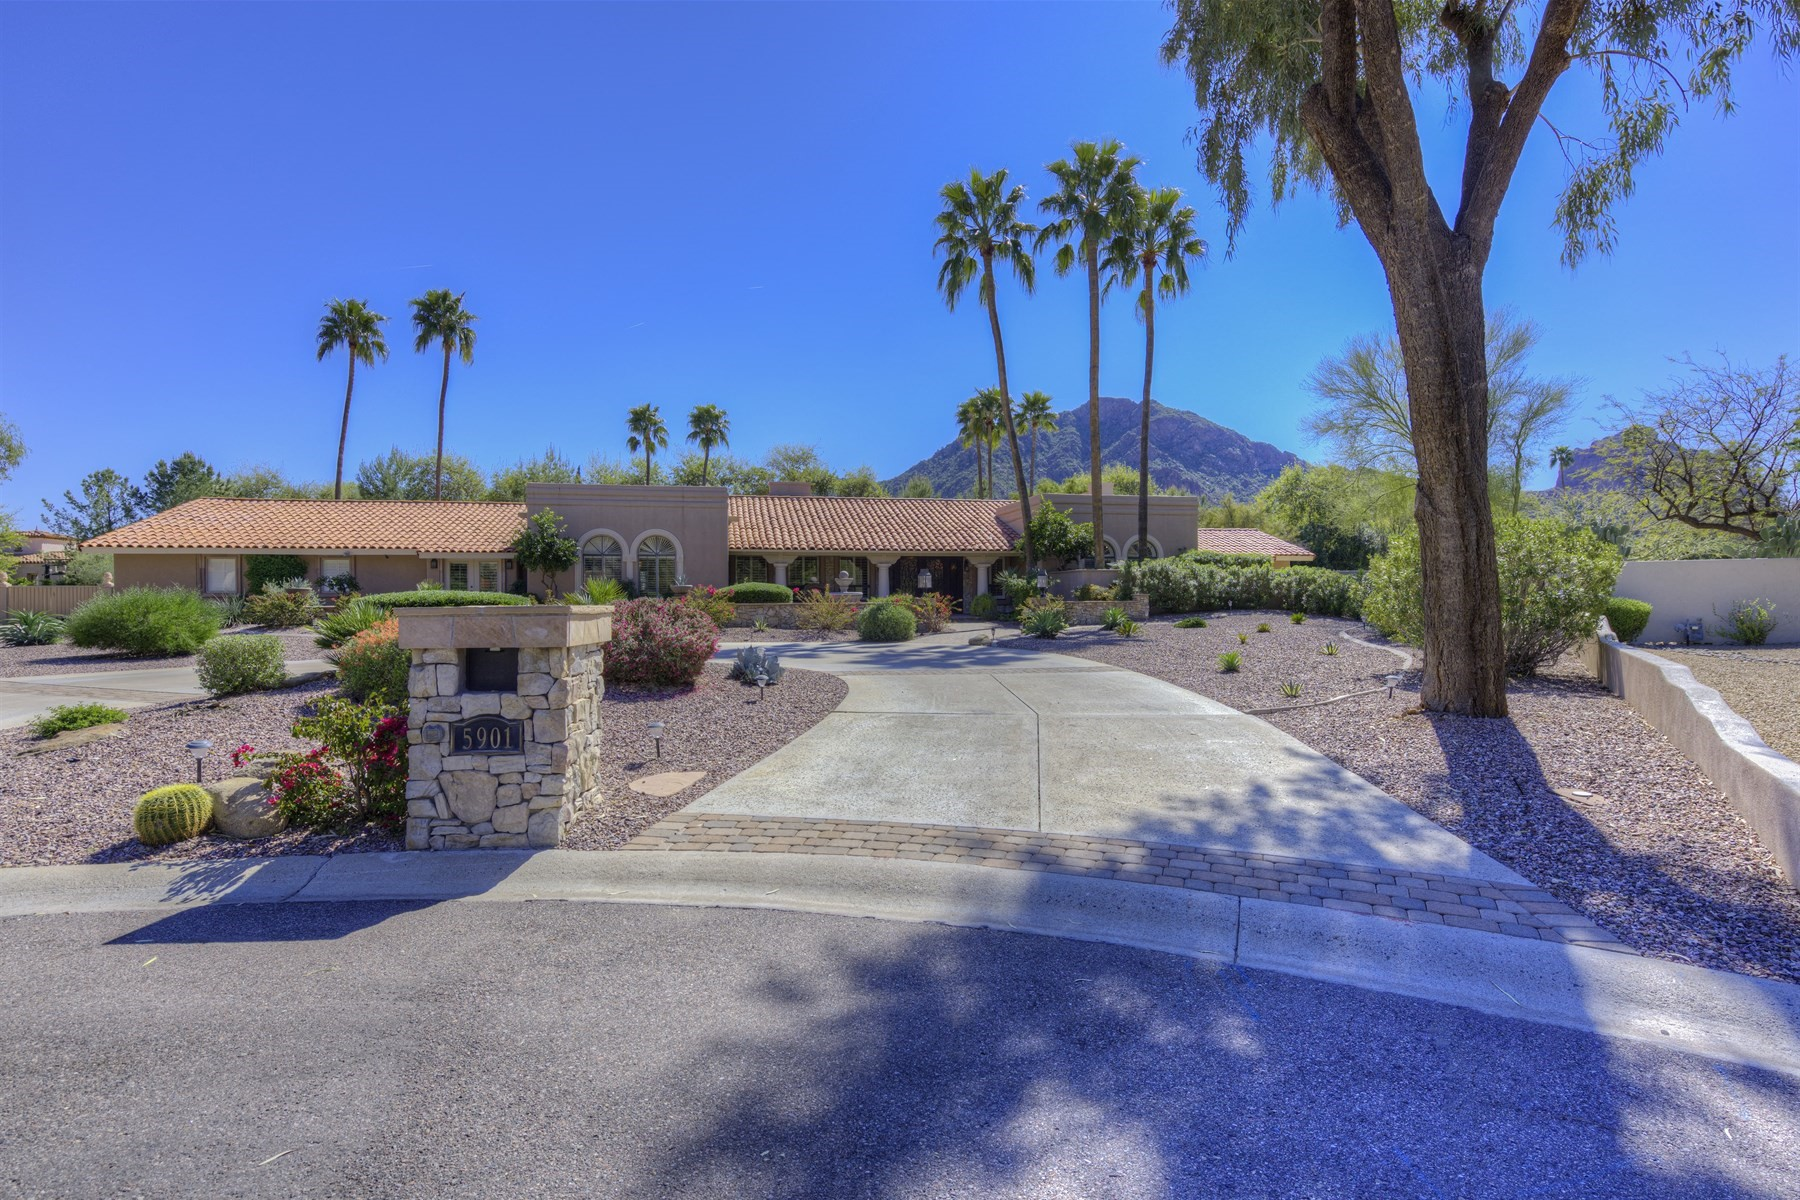 Single Family Home for Sale at Timeless four bedroom home in Paradise Valley 5901 E Stella Ln Paradise Valley, Arizona, 85253 United States